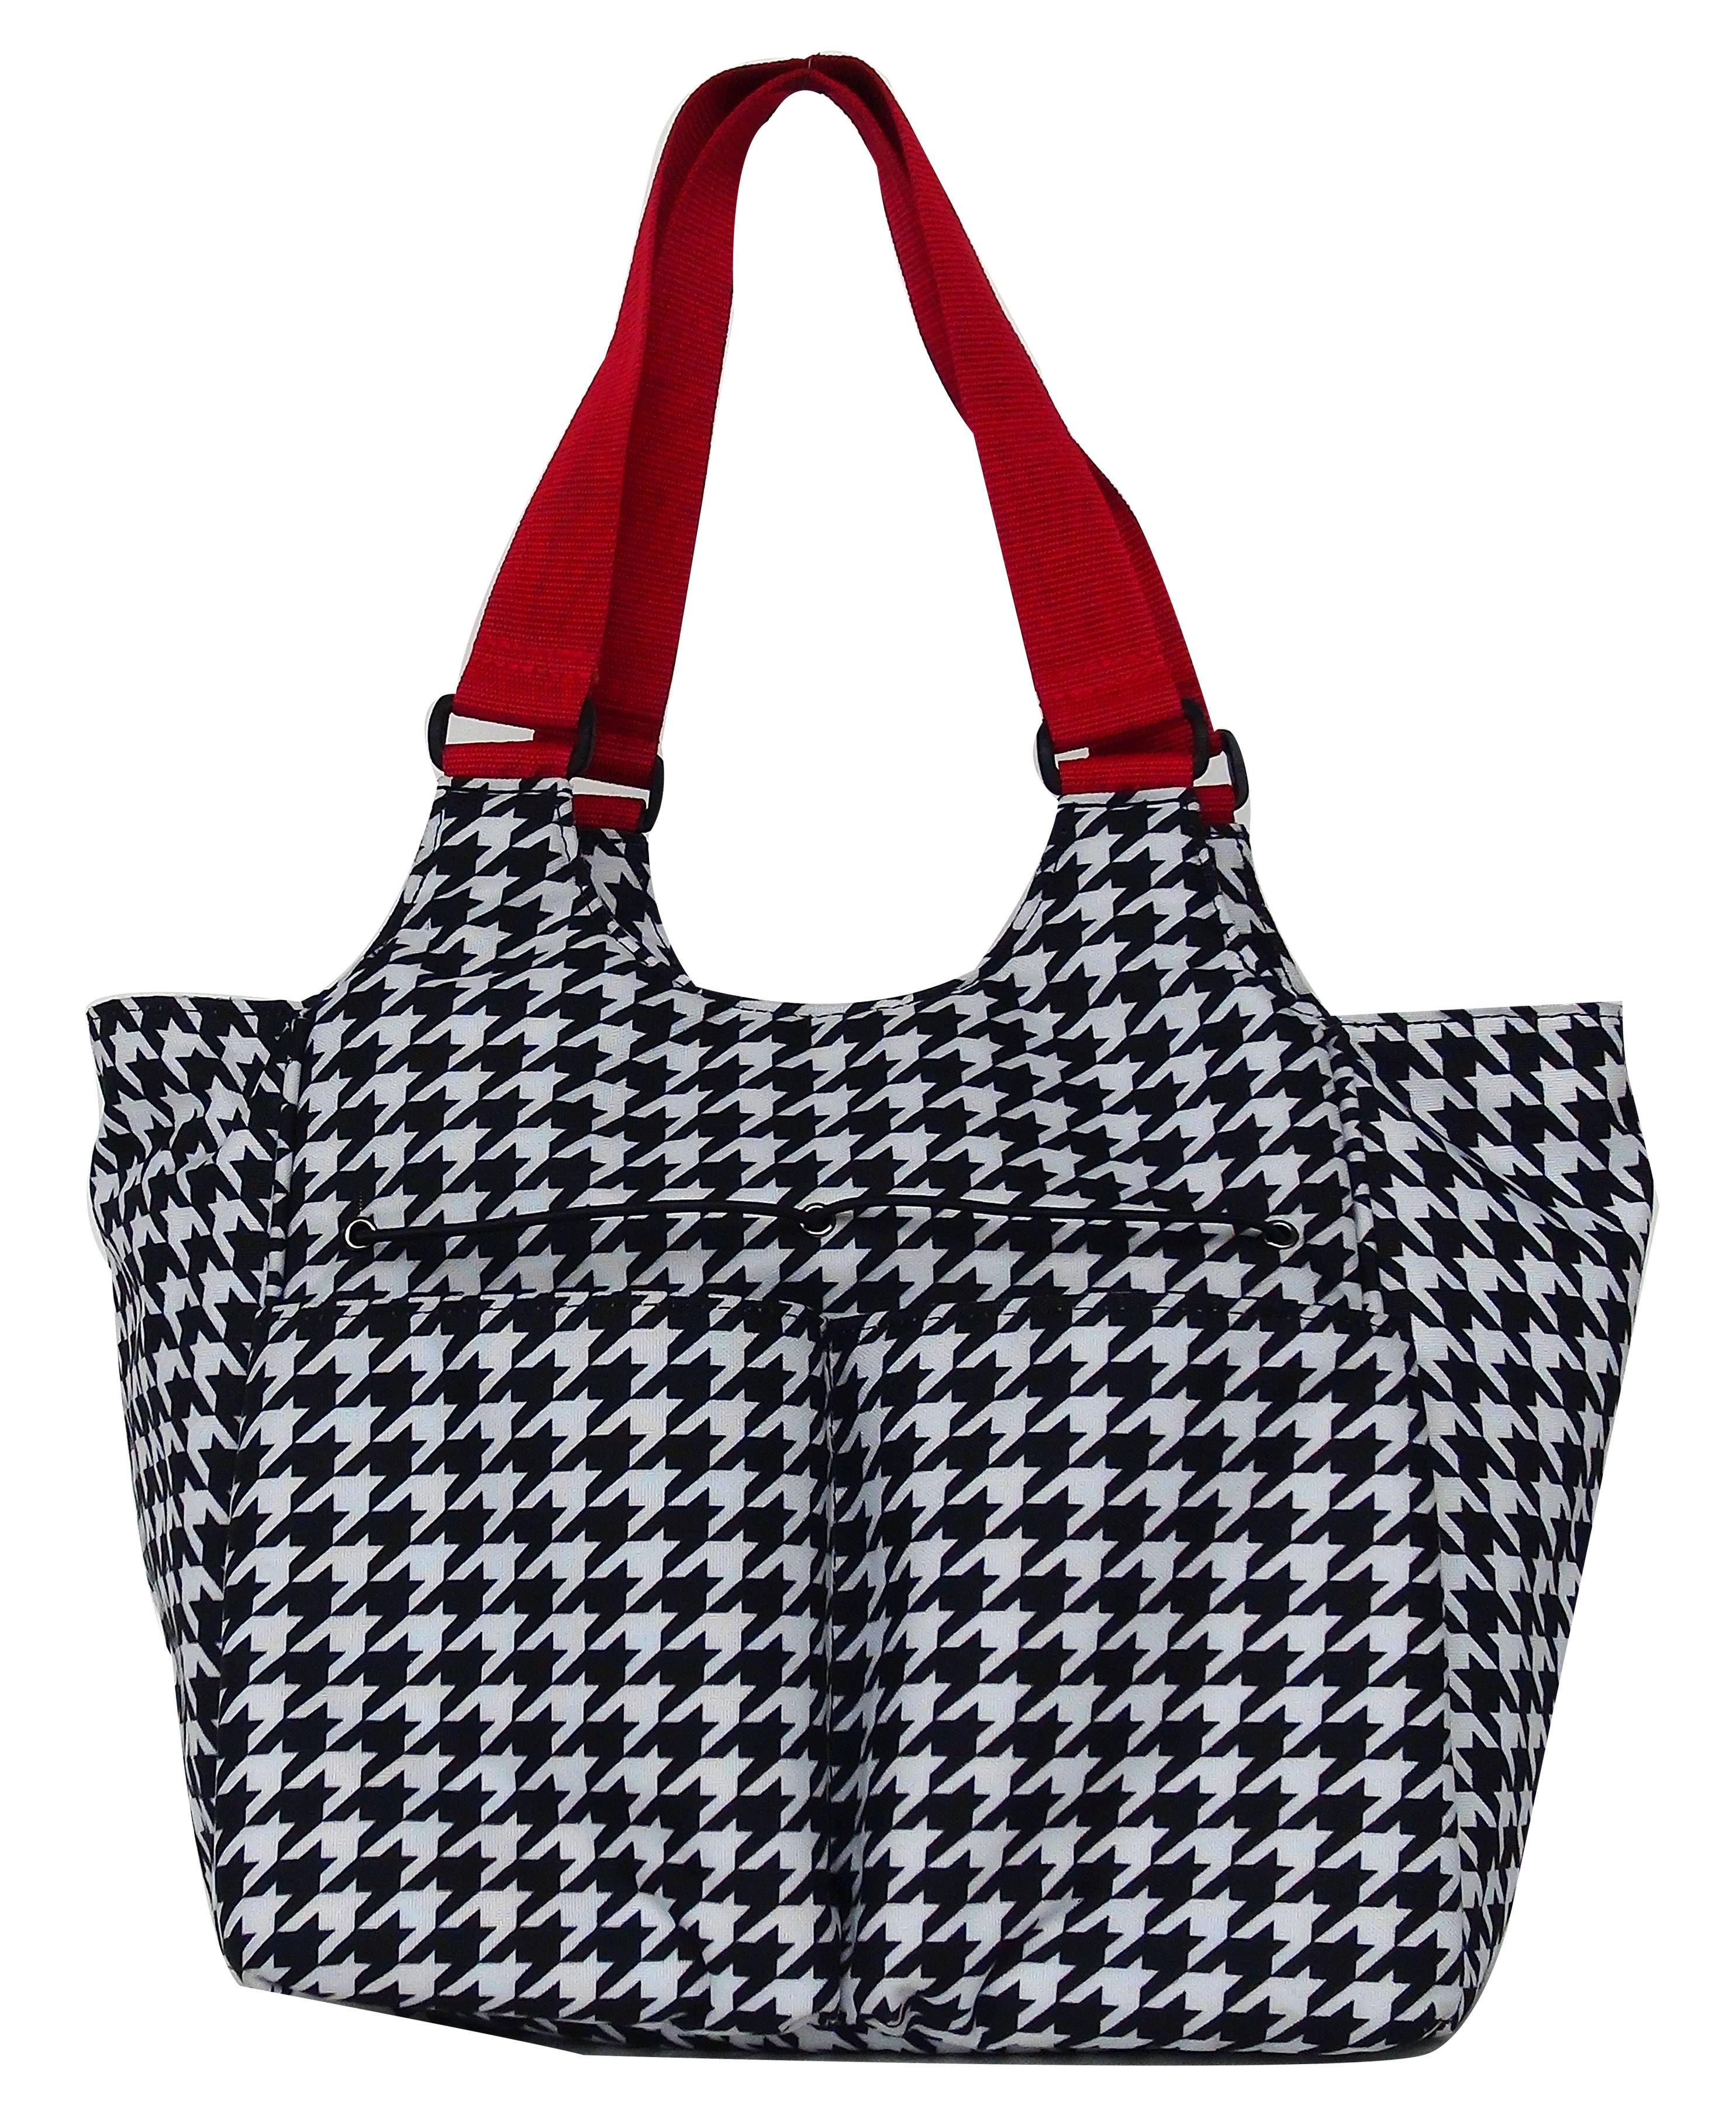 Lami-Cell Houndstooth Accessory Bag